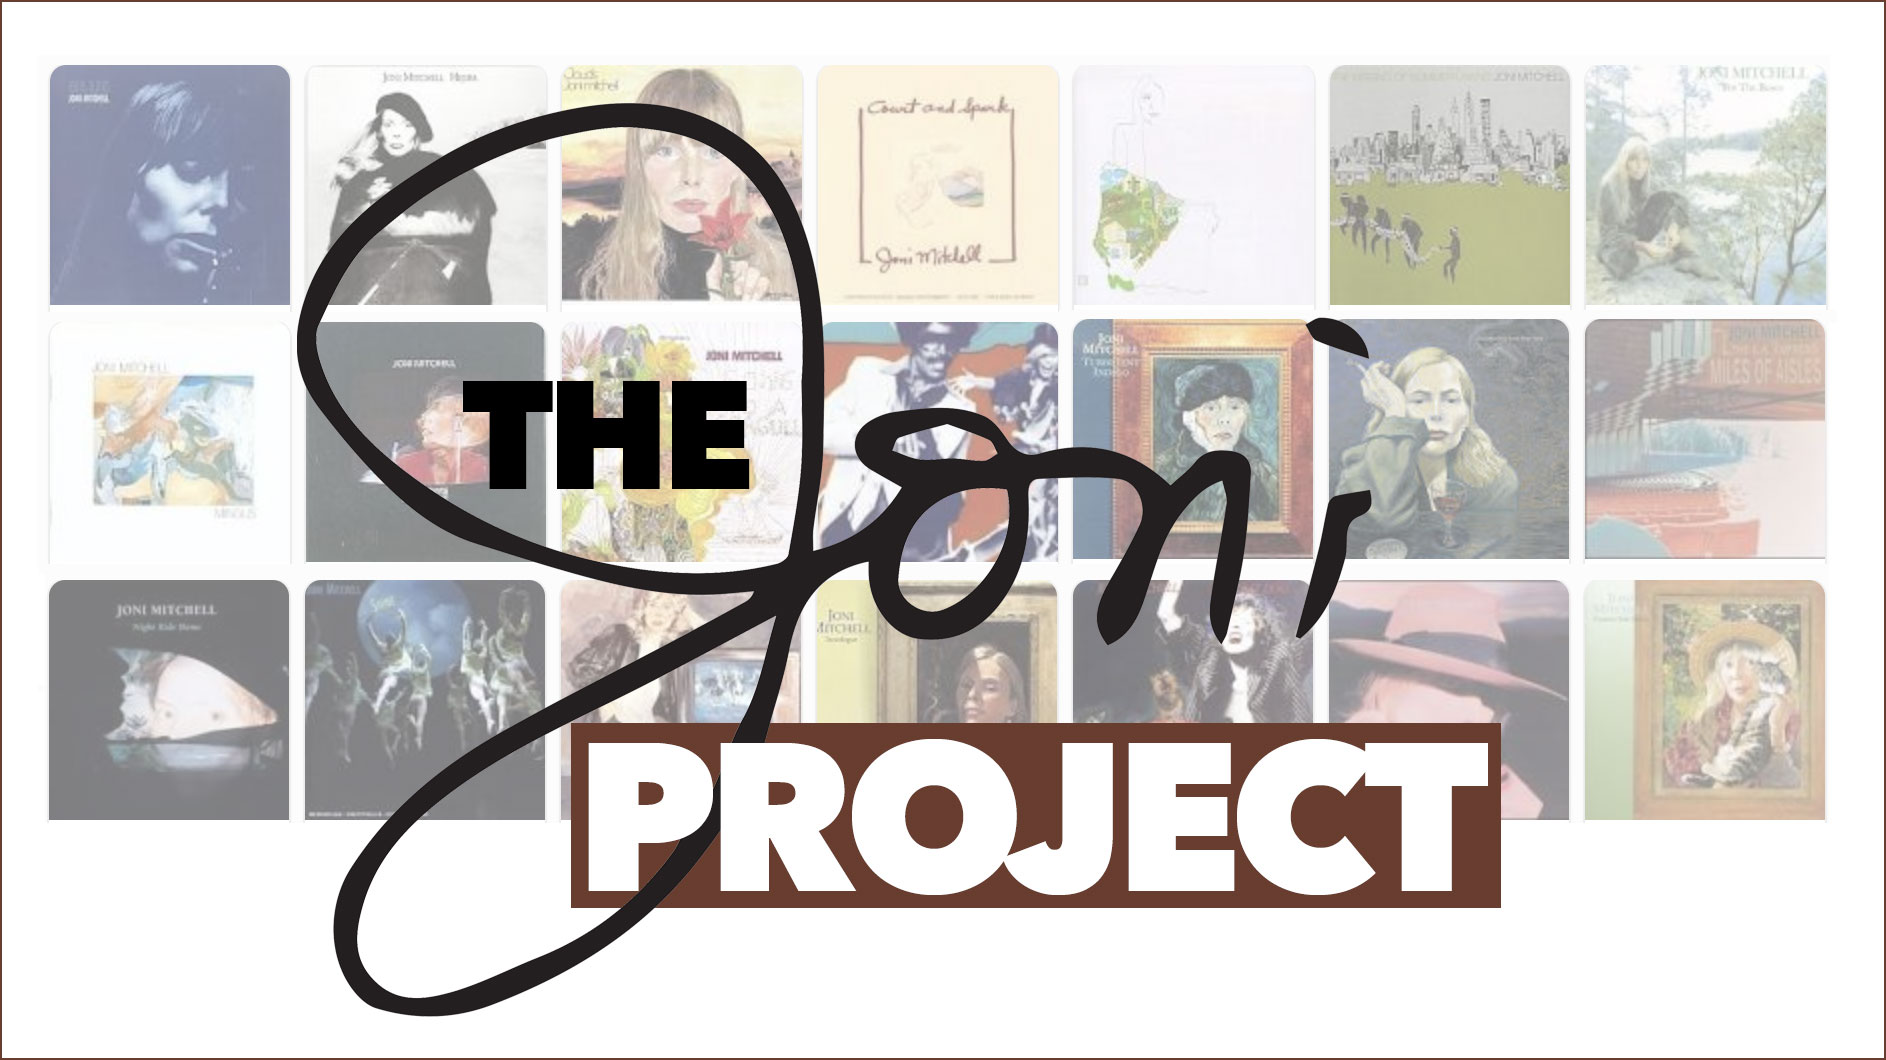 Honoring Joni Mitchell, it's The Joni Project from WFUV.